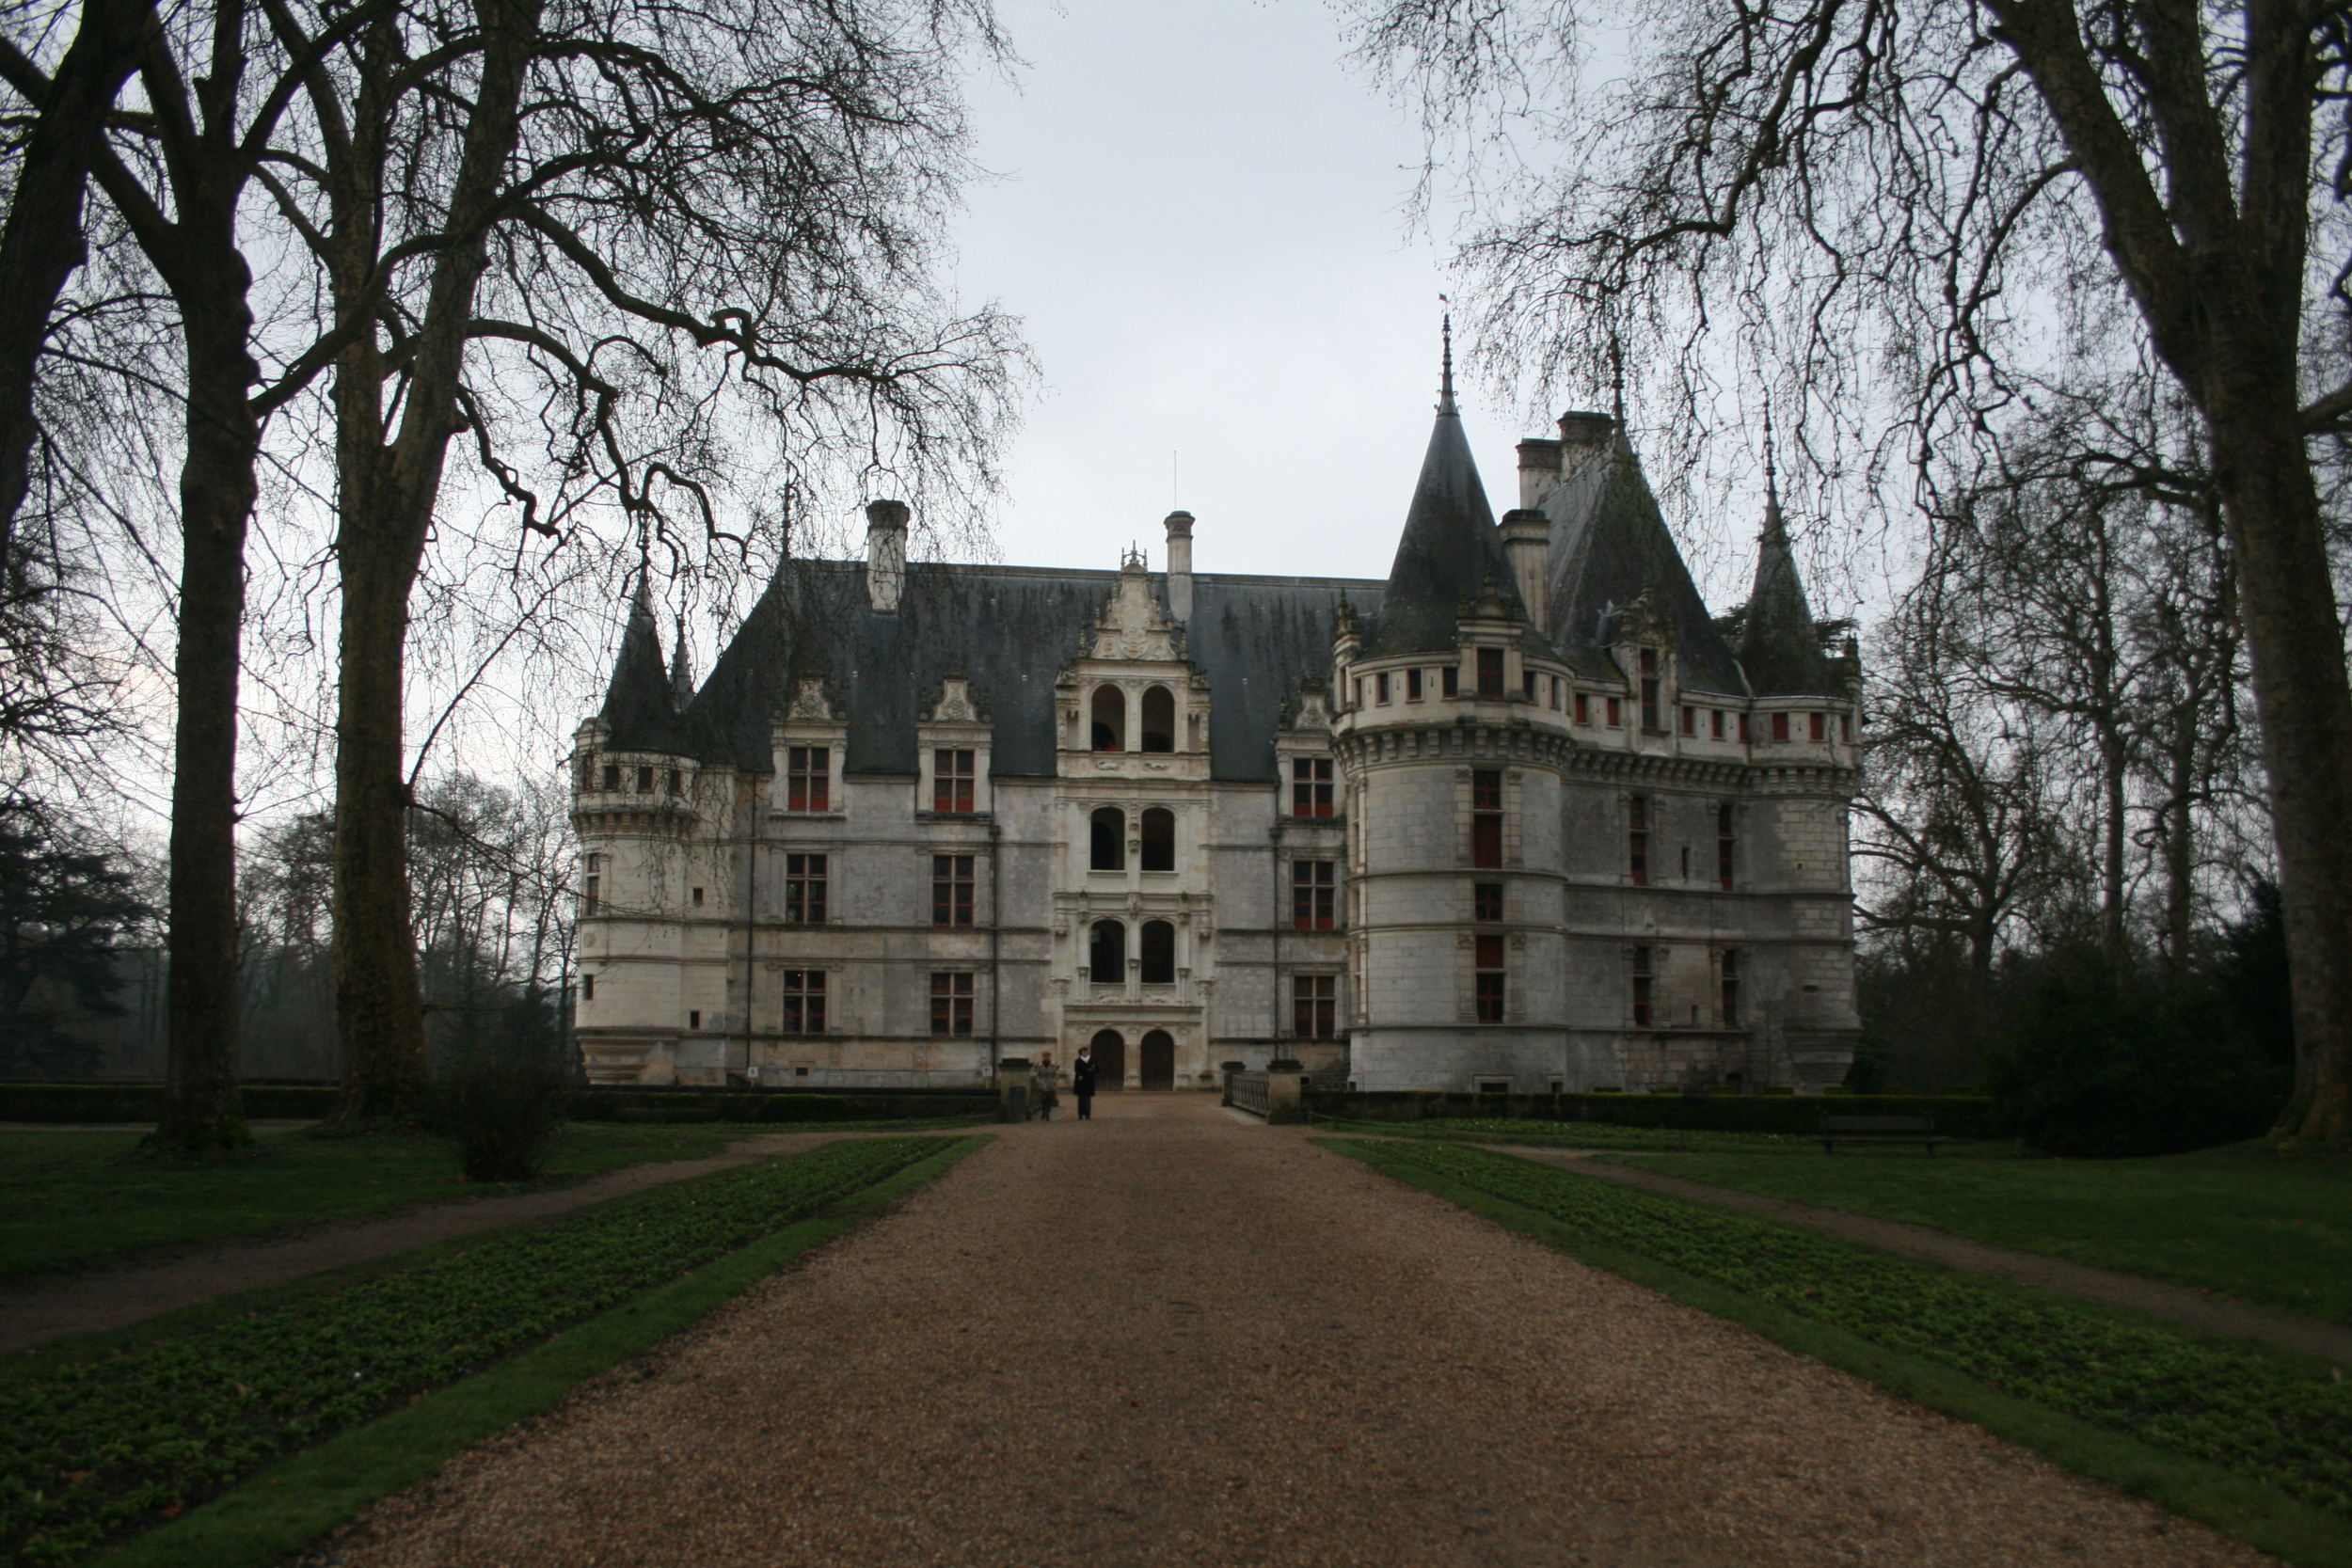 The Château d'Azay-le-Rideau. The one I stayed in was a bit more modest.